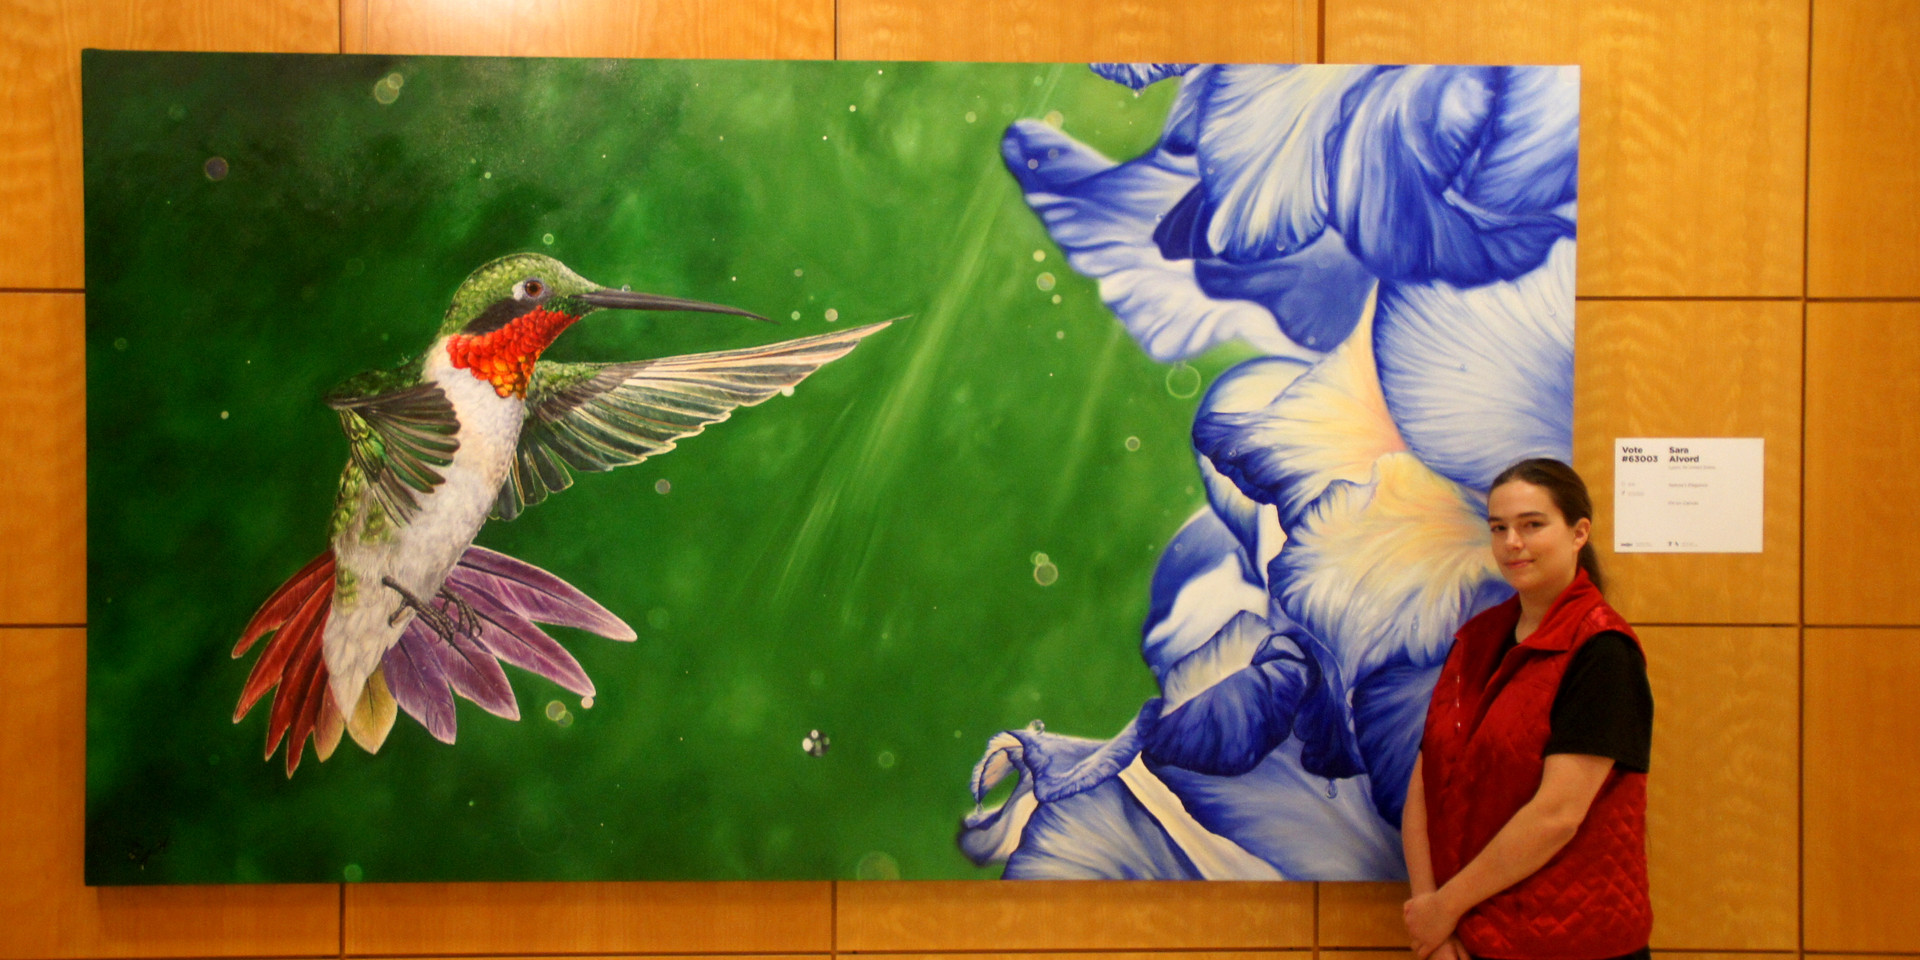 A 9' Oil Painting of a hummingbird with hyper realistic details